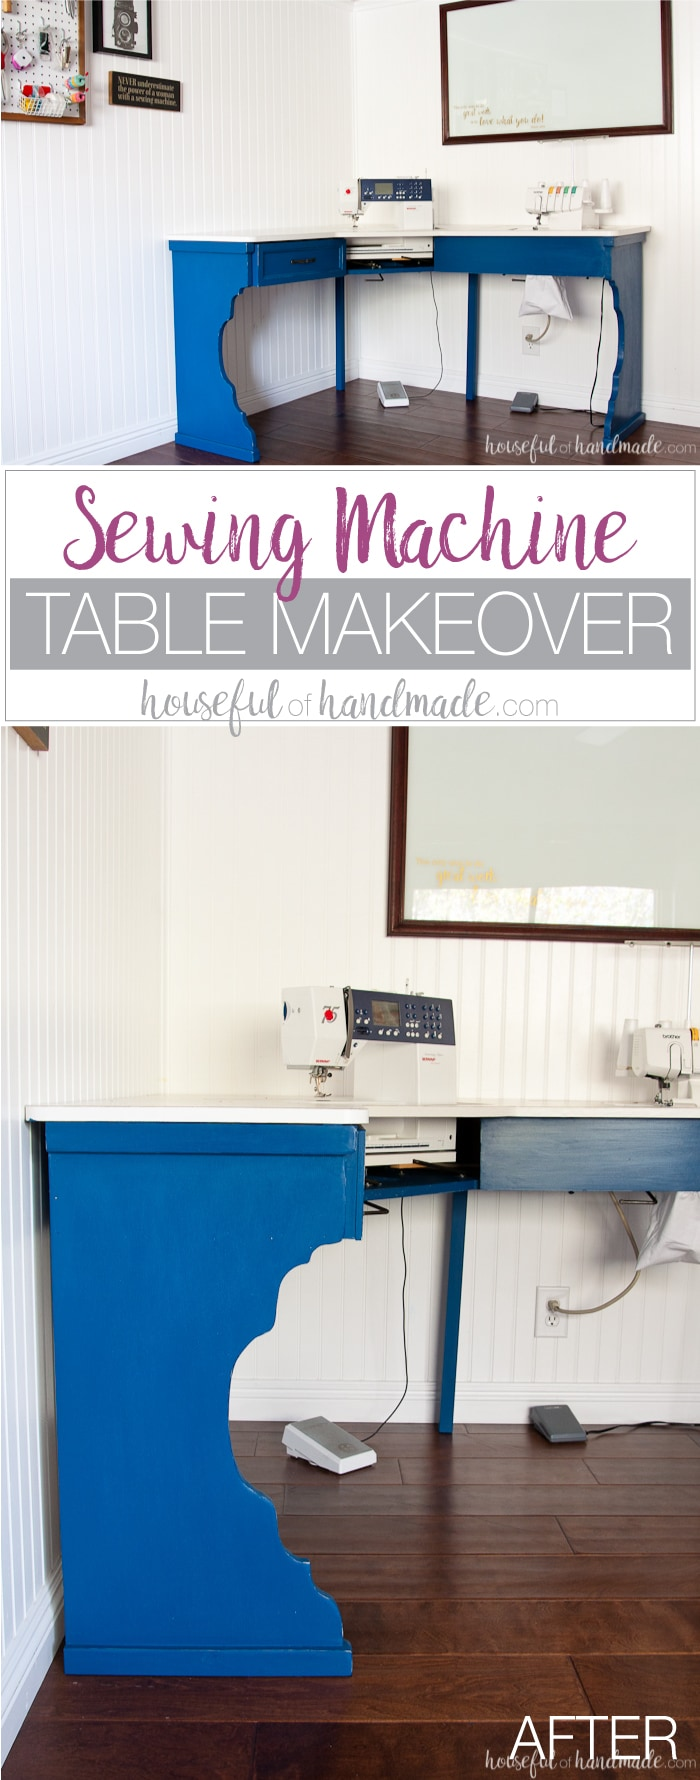 Transform an old utilitarian table into a beautiful farmhouse craft table with this sewing machine table makeover. The beautiful table legs were created on a budget to transform the basic table into a piece of furniture with lots of style. Housefulofhandmade.com | Furniture Makeover | Chalk Paint Makeover | Farmhouse Table Legs | Sewing Desk | $100 Room Challenge